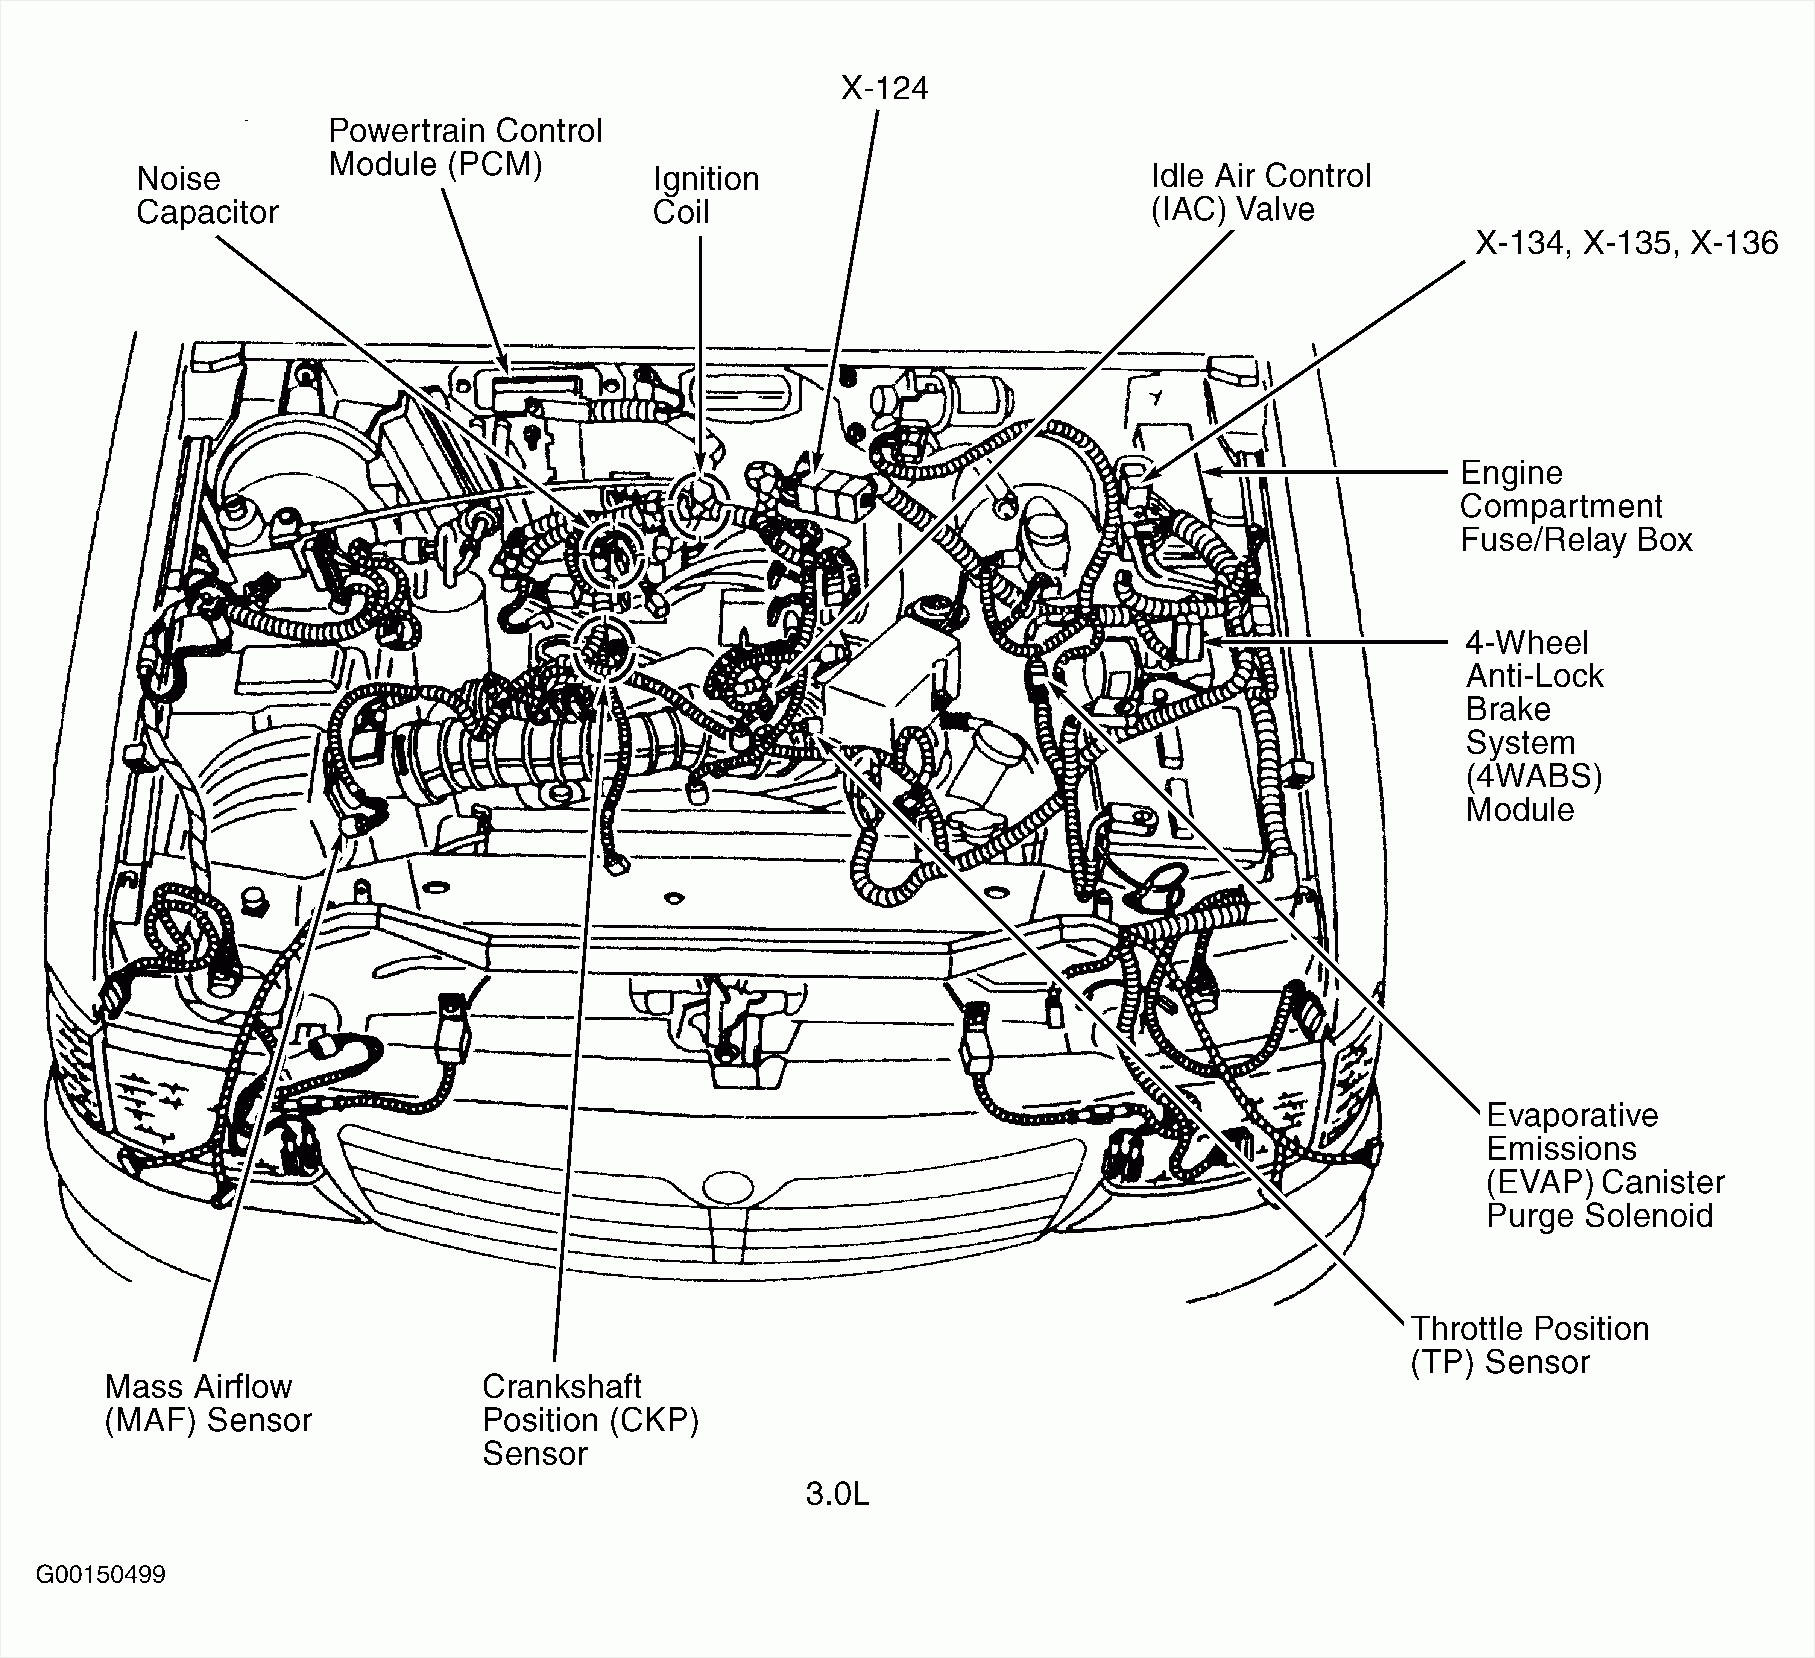 1994 mazda mpv engine diagram wiring diagram com  1993 mazda mpv engine diagram #4